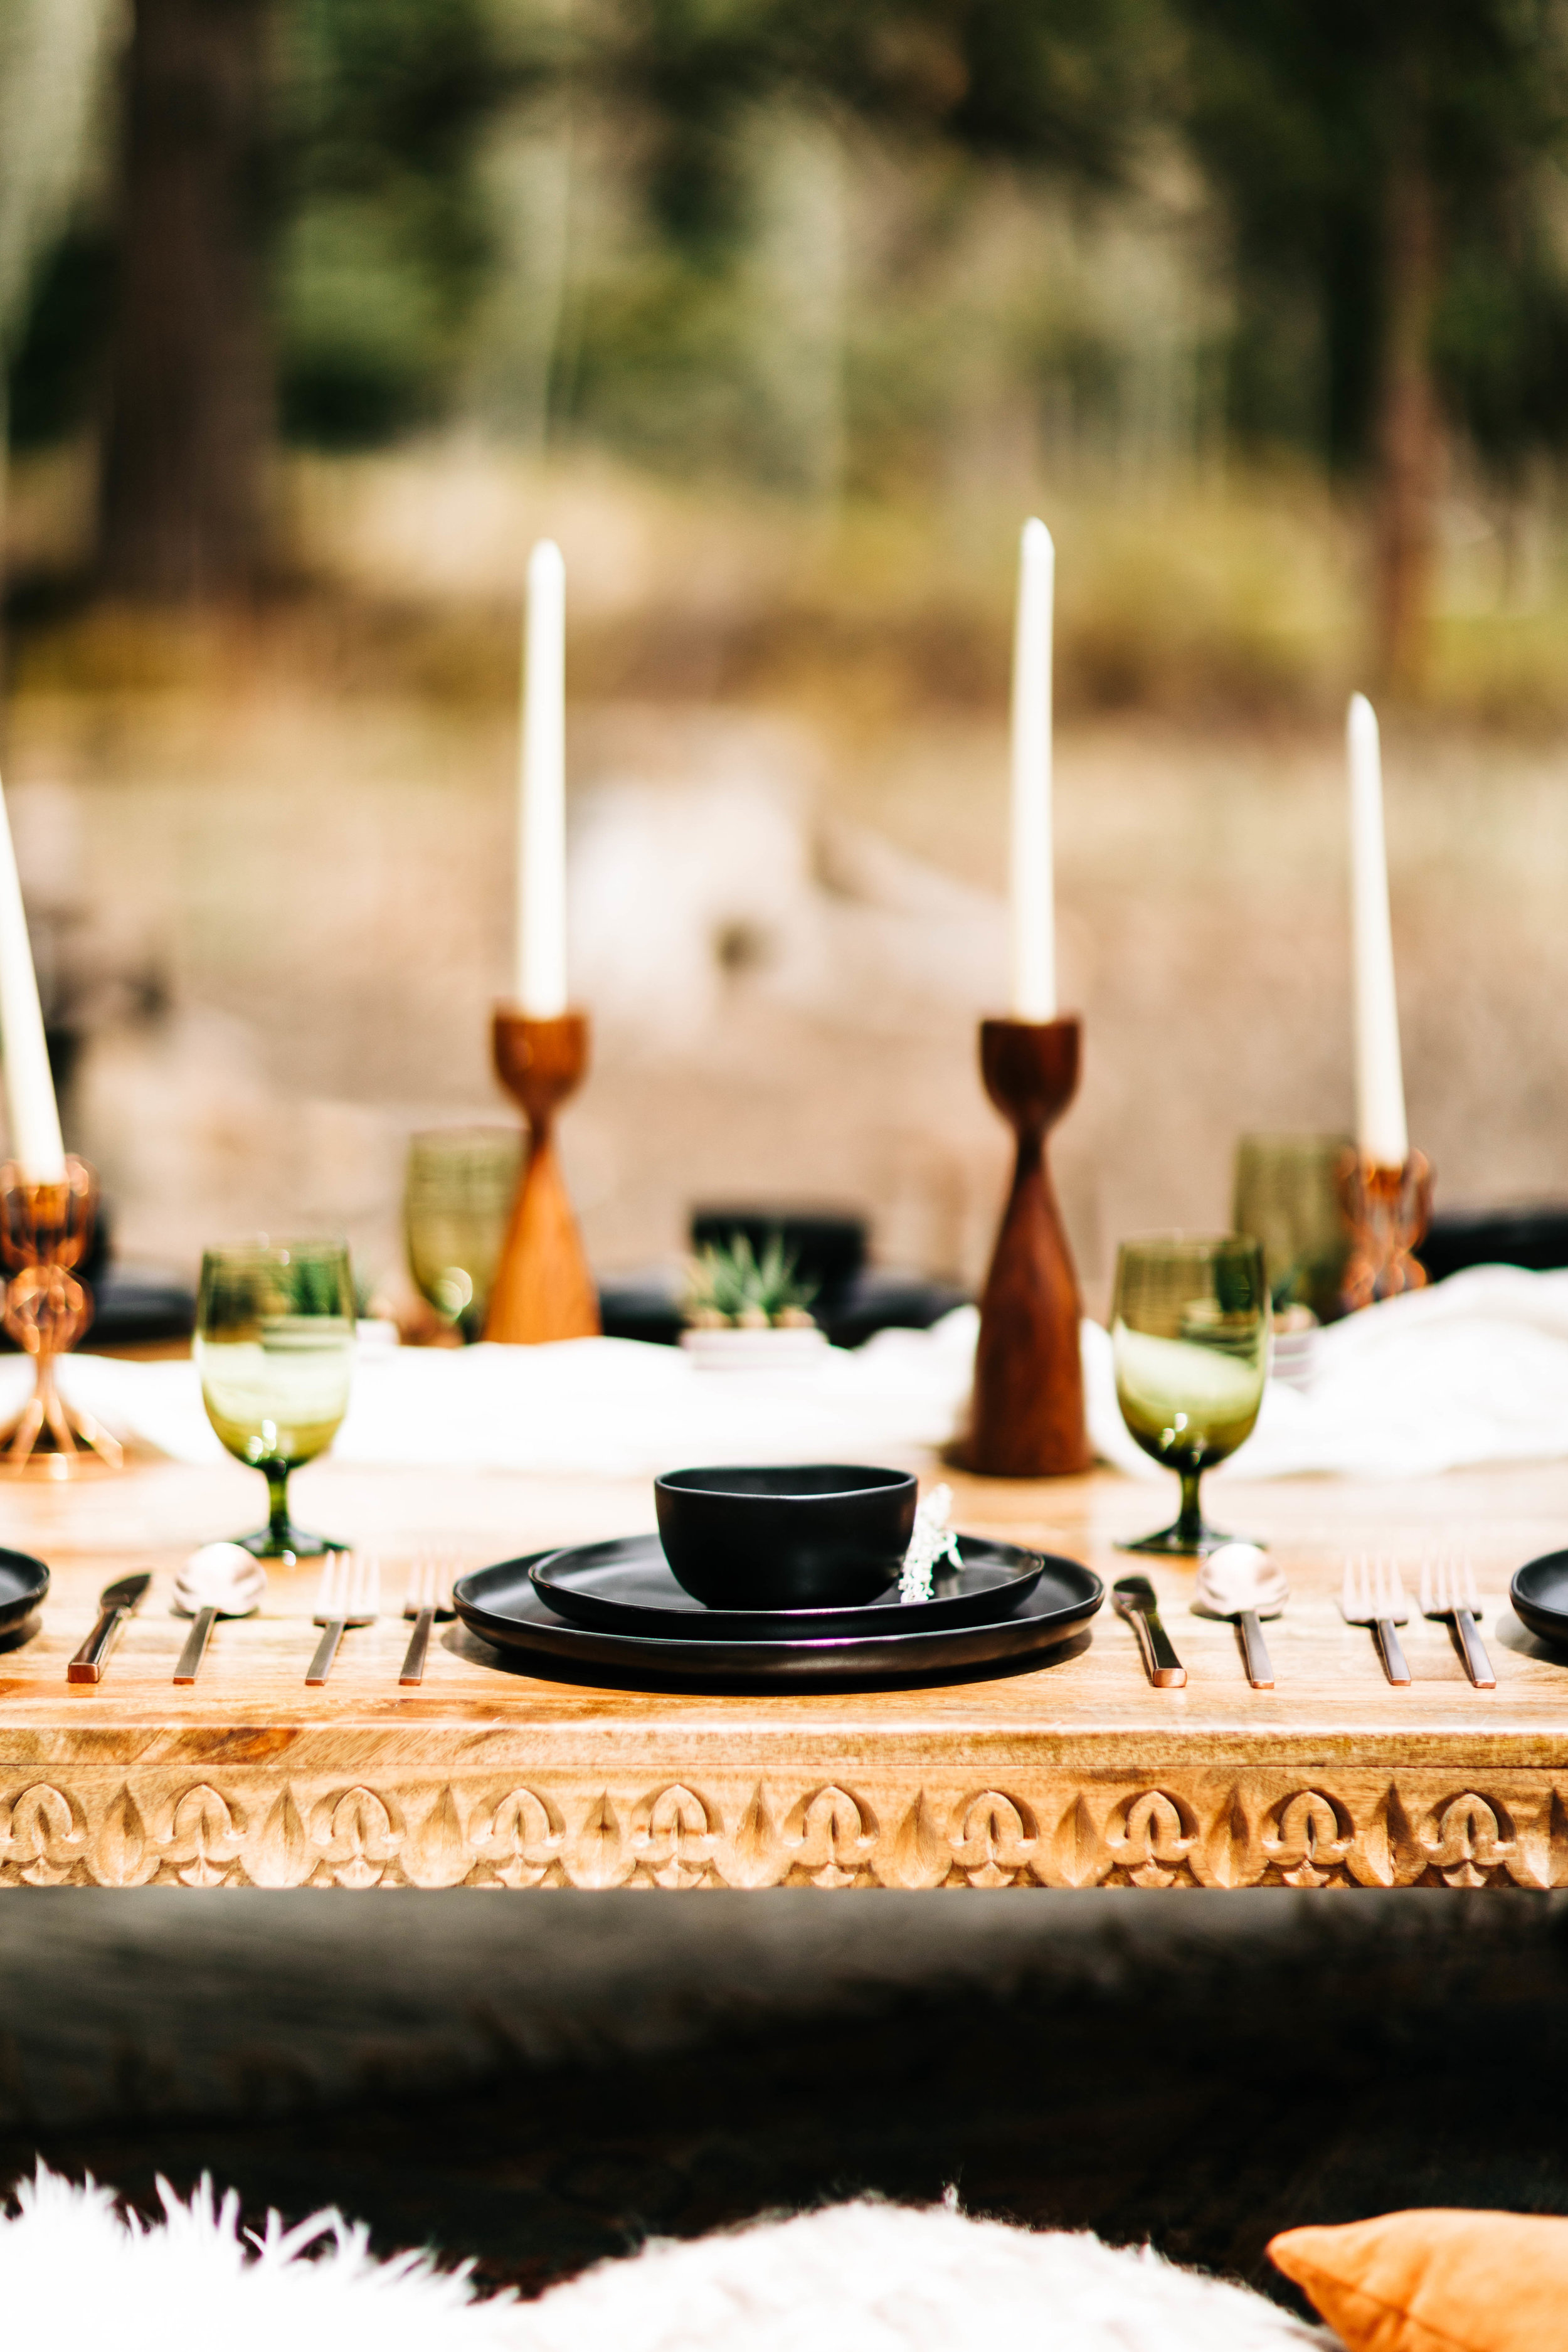 Morocco inspired adventure elopement picnic | Rocky Mountain elopement ideas